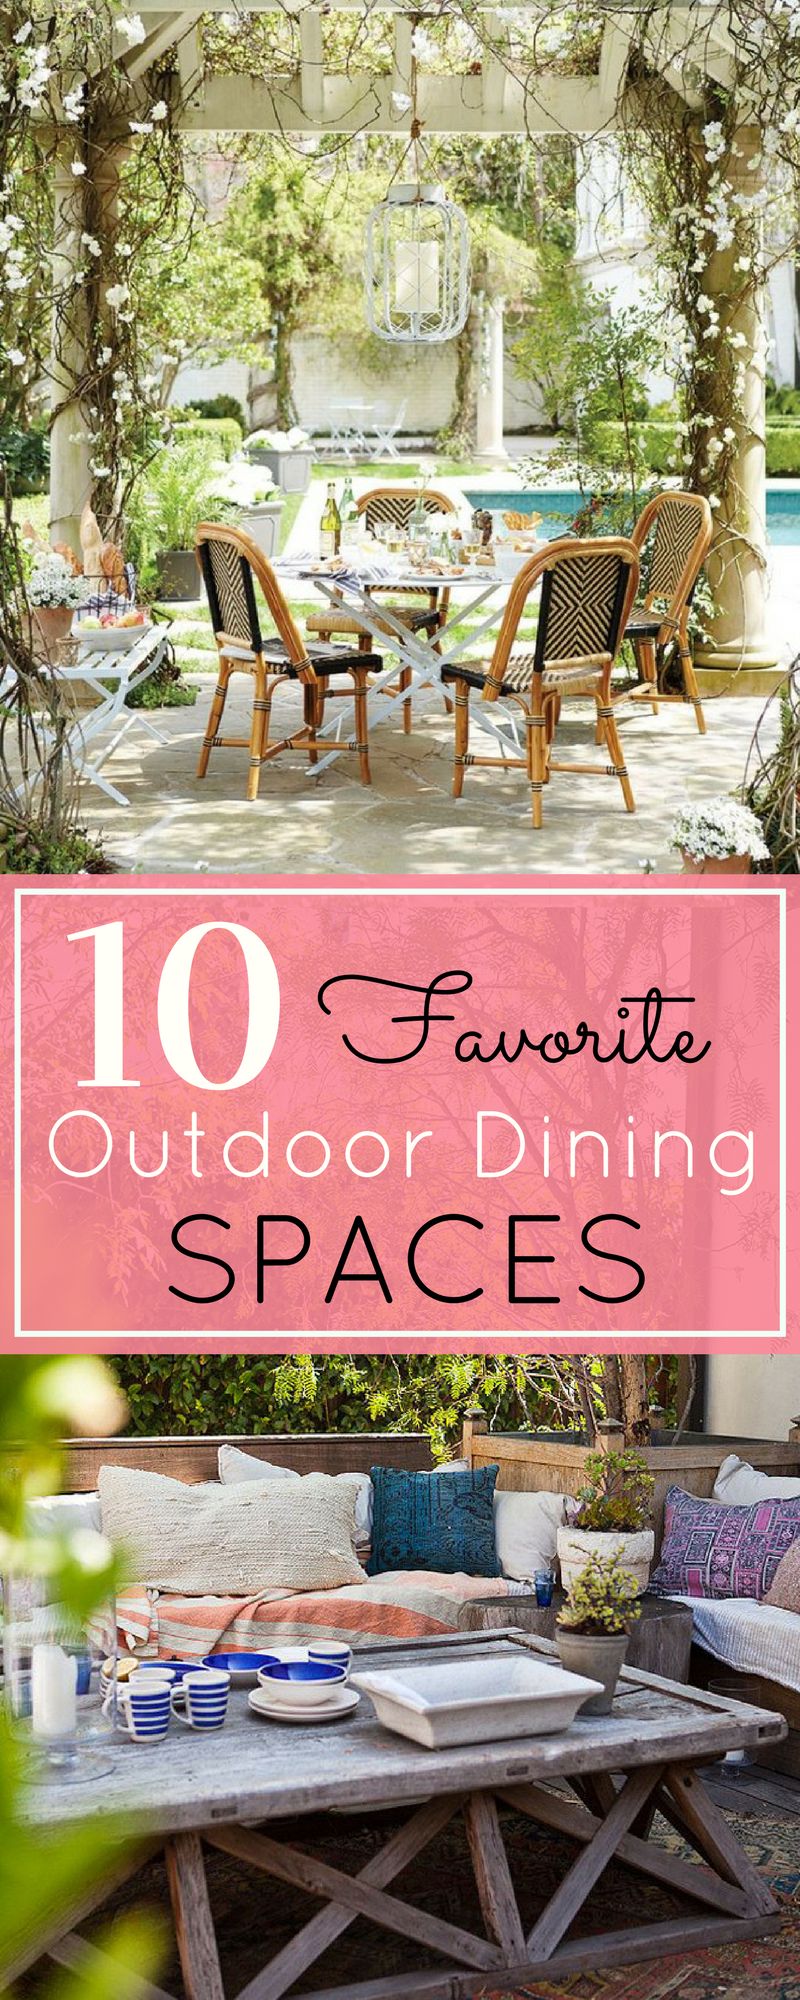 Here are my 10 favorite outdoor dining spaces and design ideas. | glitterinc.com | @glitterinc